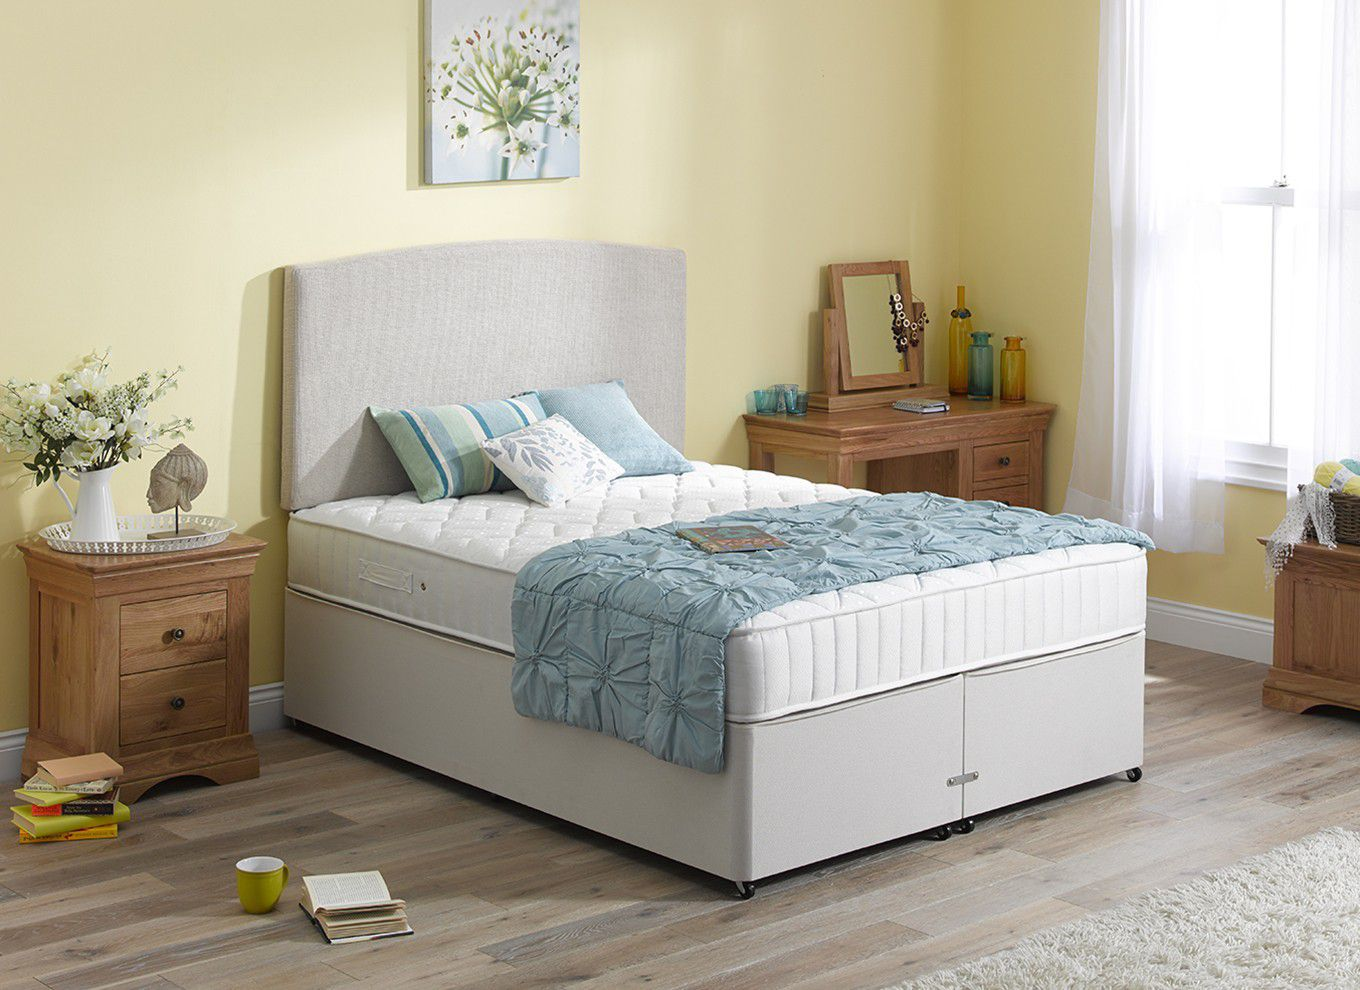 Orion double beds reviews for Double divan bed with firm mattress